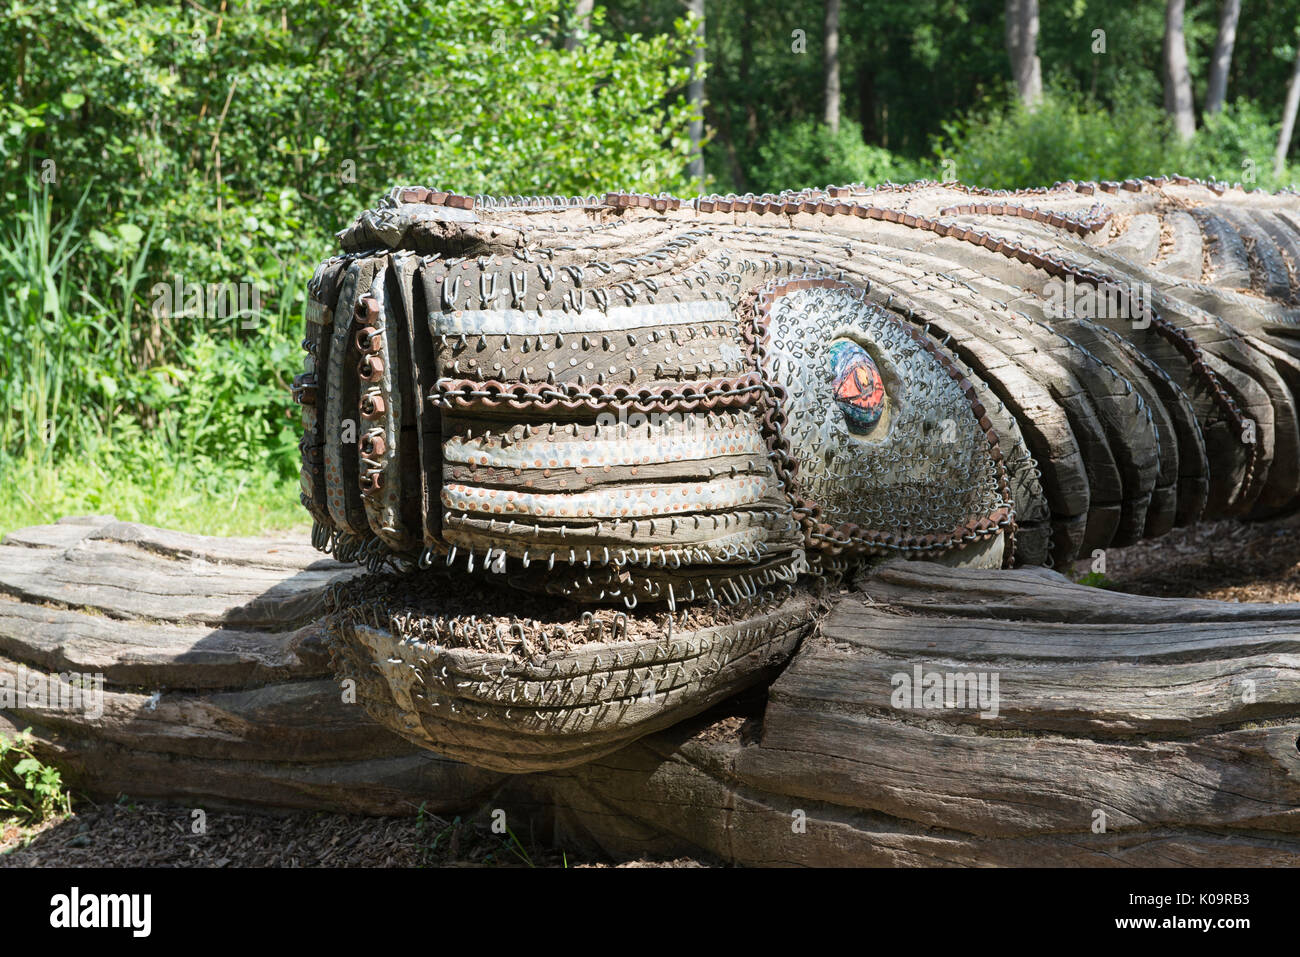 A carved wooden sea monster sculpture  in Tilgate Park, Crawley, West Sussex, England, UK - Stock Image